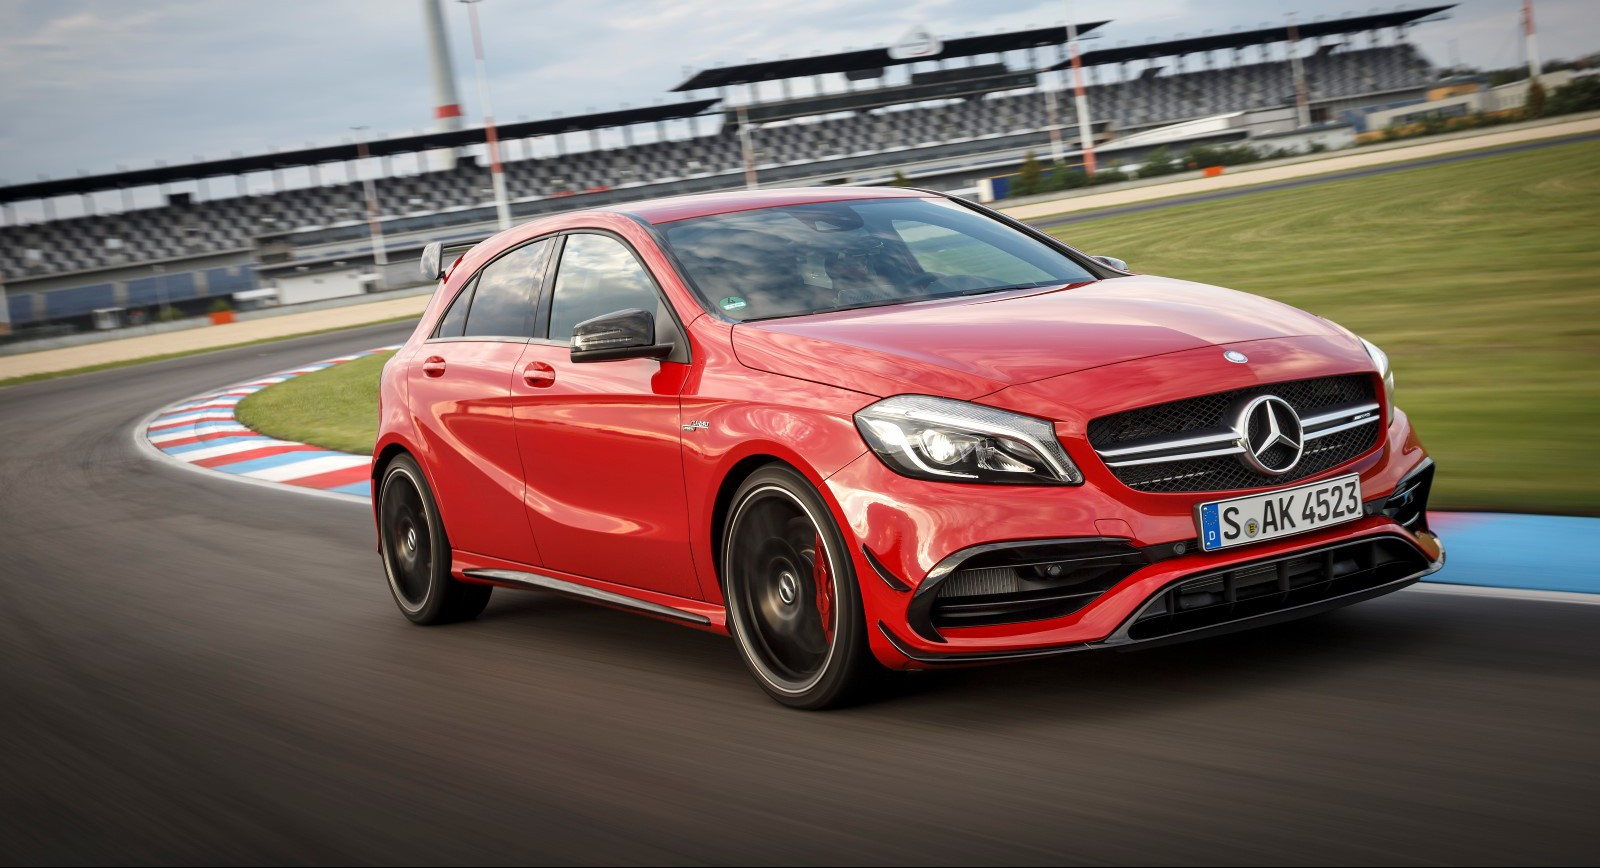 2016 mercedes amg a45 4matic review gtspirit for Mercedes benz a45 amg